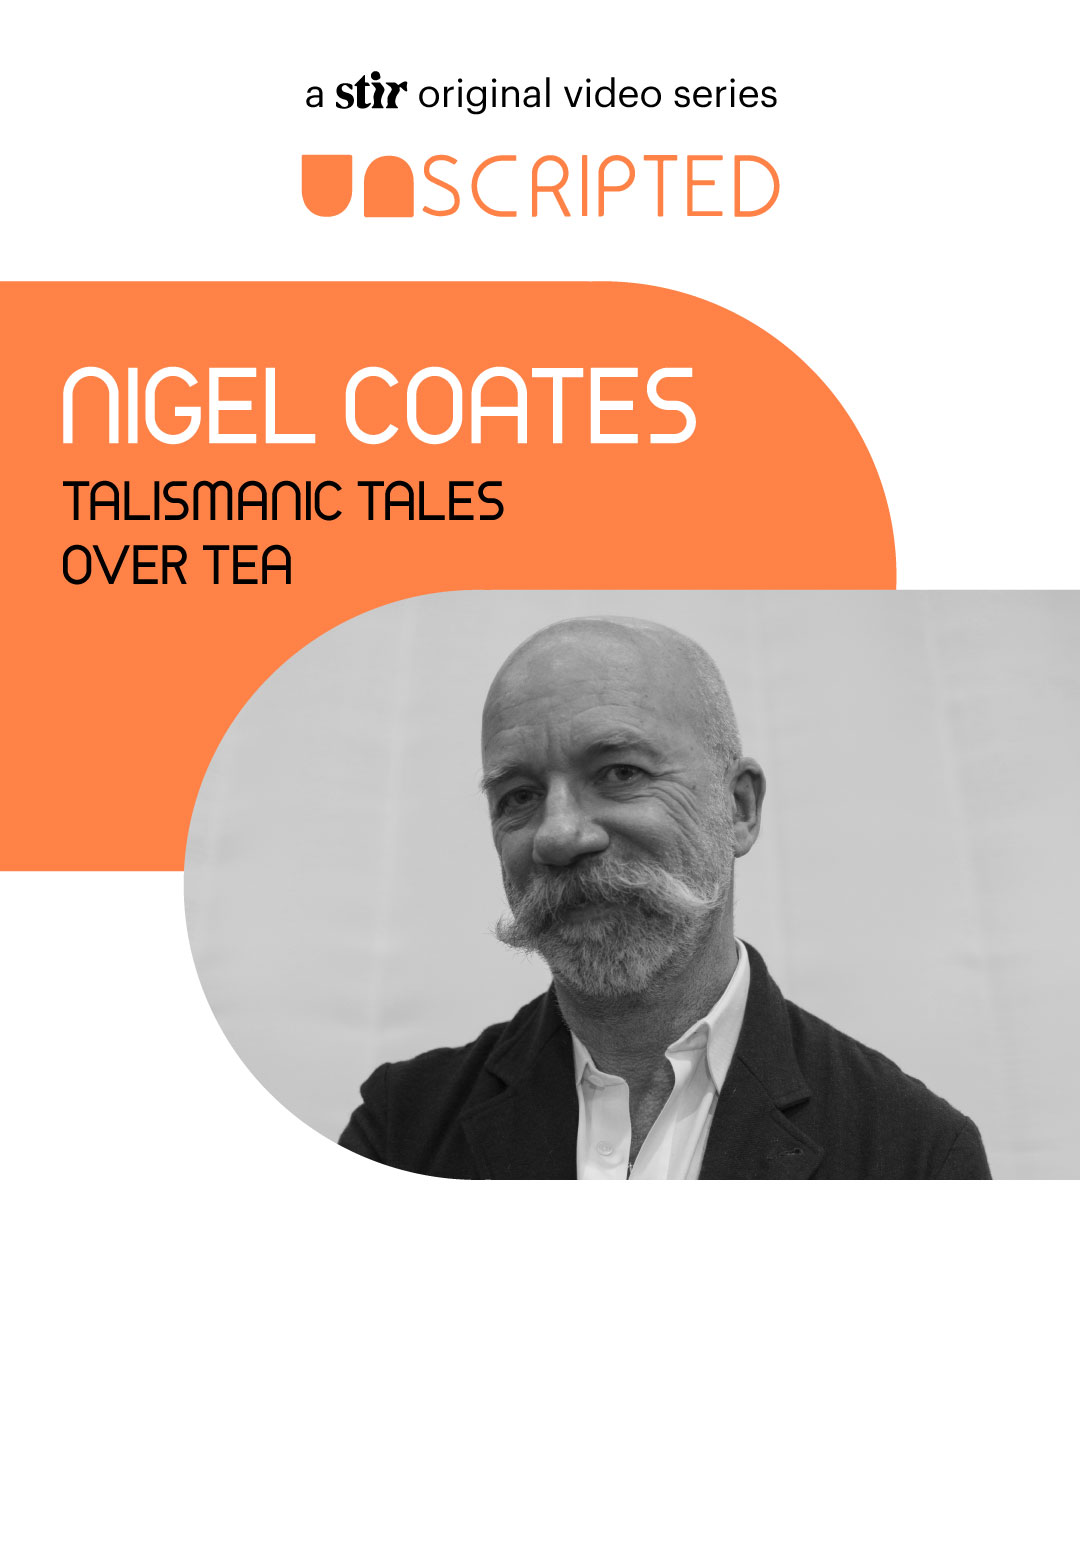 UNSCRIPTED with Nigel Coates | UNSCRIPTED with Nigel Coates | Interviews | STIRworld